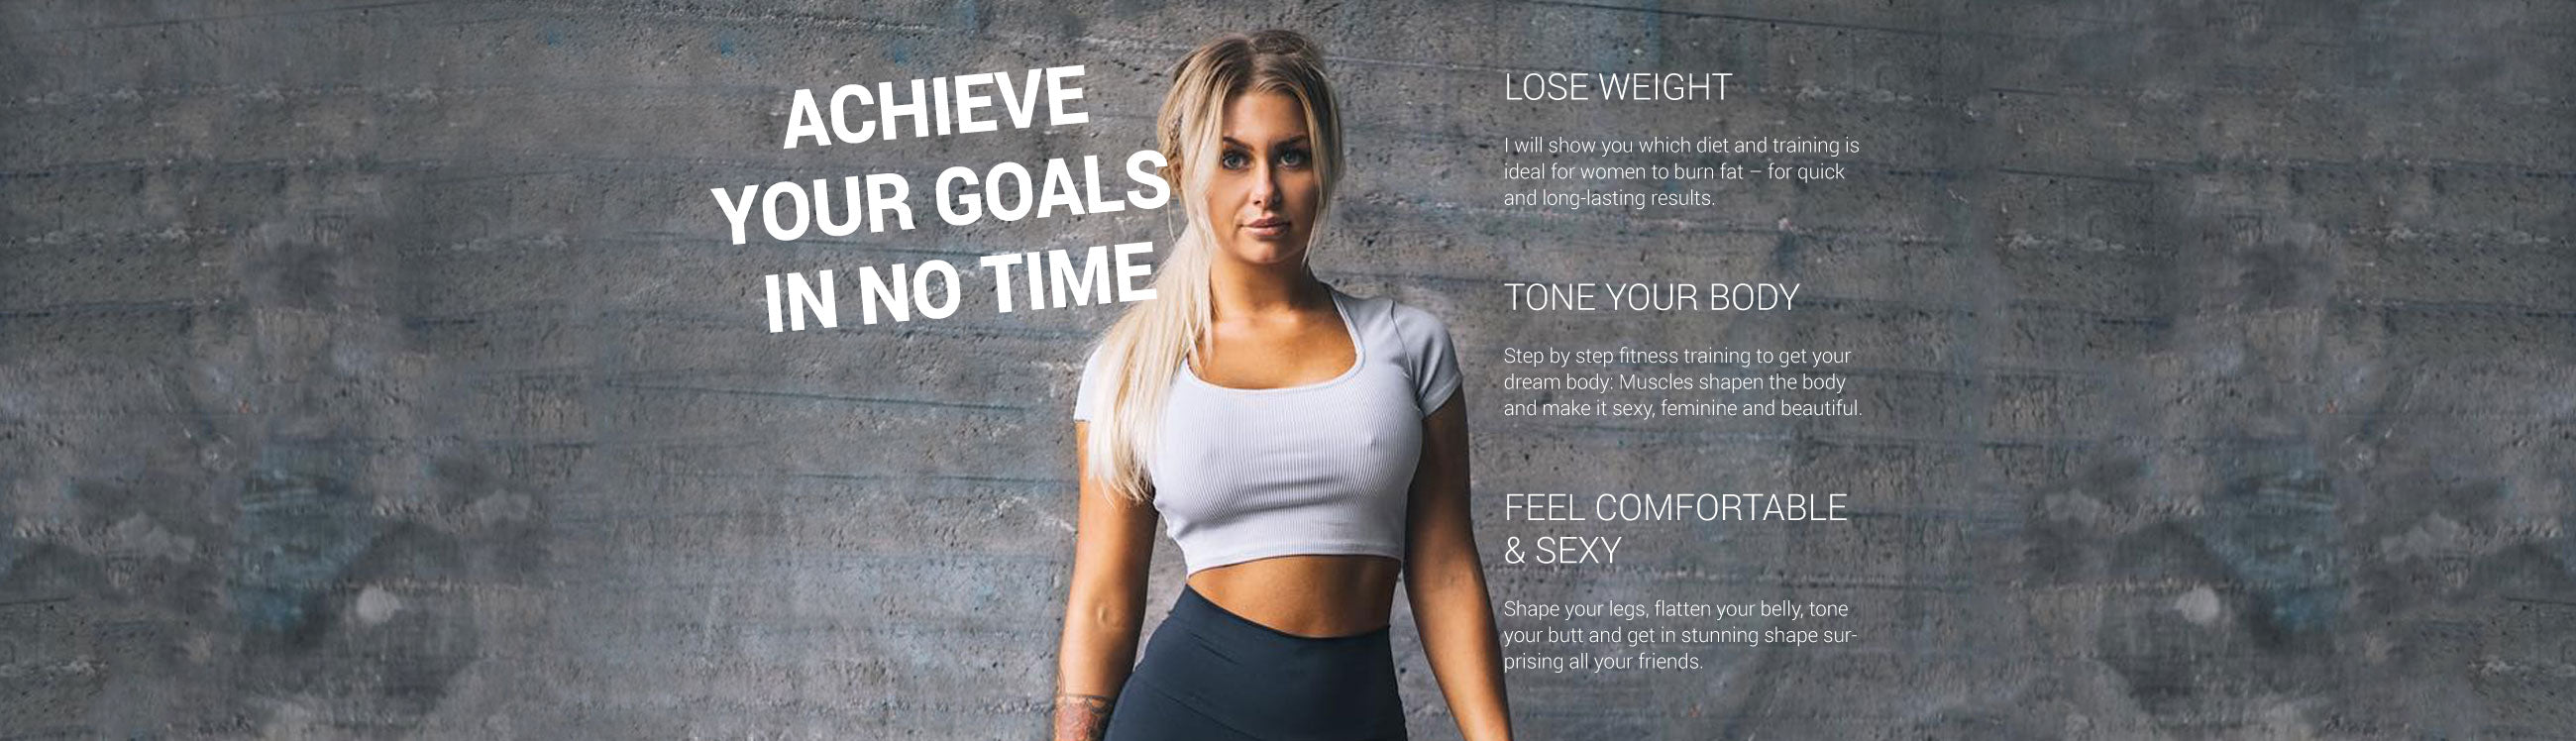 achieve your goals in no time